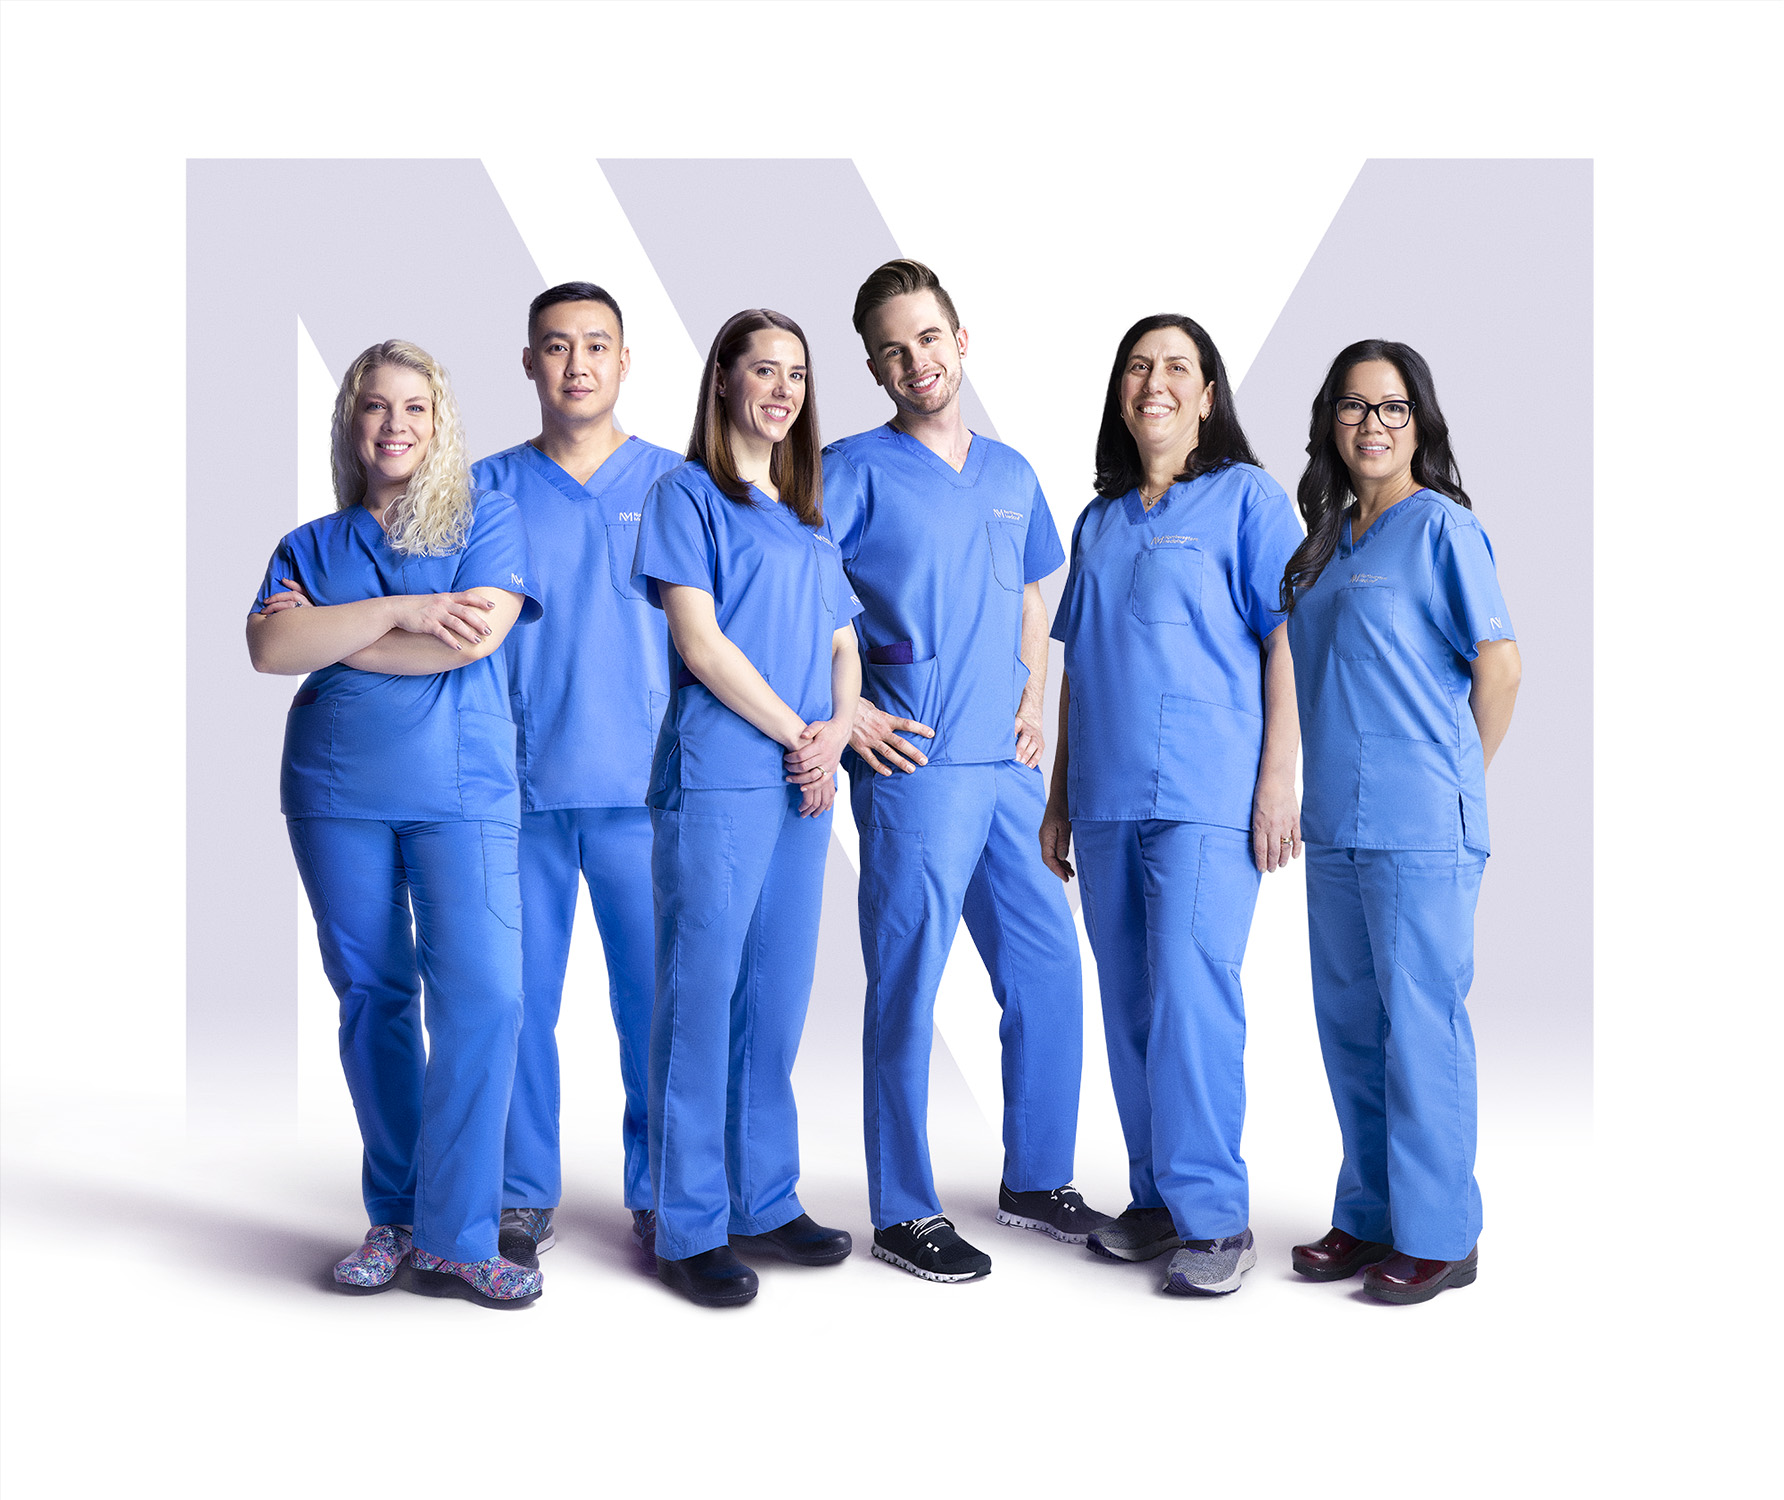 20_LAU_014_Mike_Nurses_RBG_V4_CR2